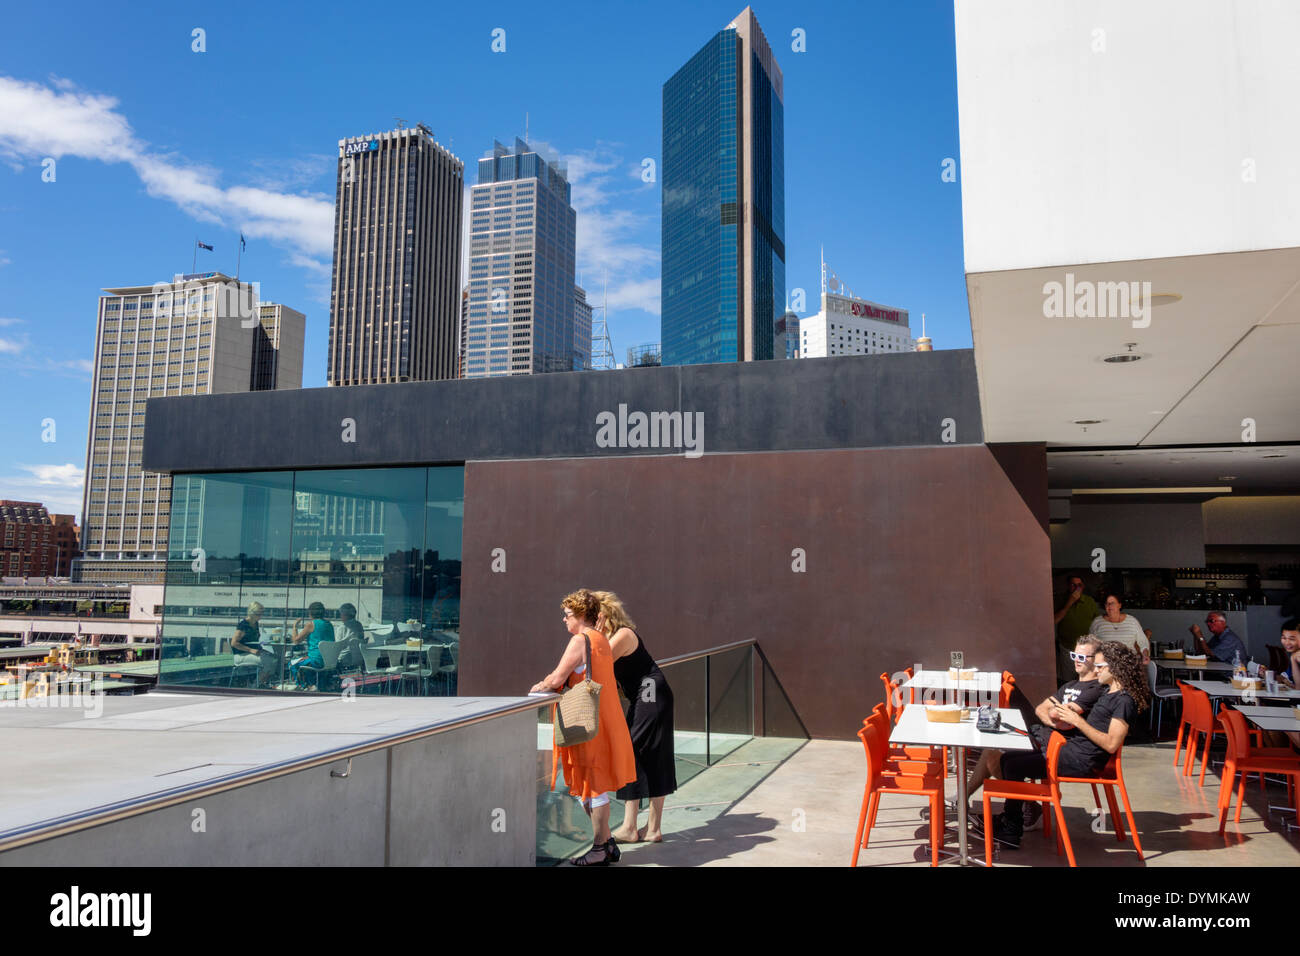 Sydney Australia NSW New South Wales West Circular Quay Museum of Contemporary Art MCA rooftop cafe restaurant CBD Central Business District city skyl - Stock Image